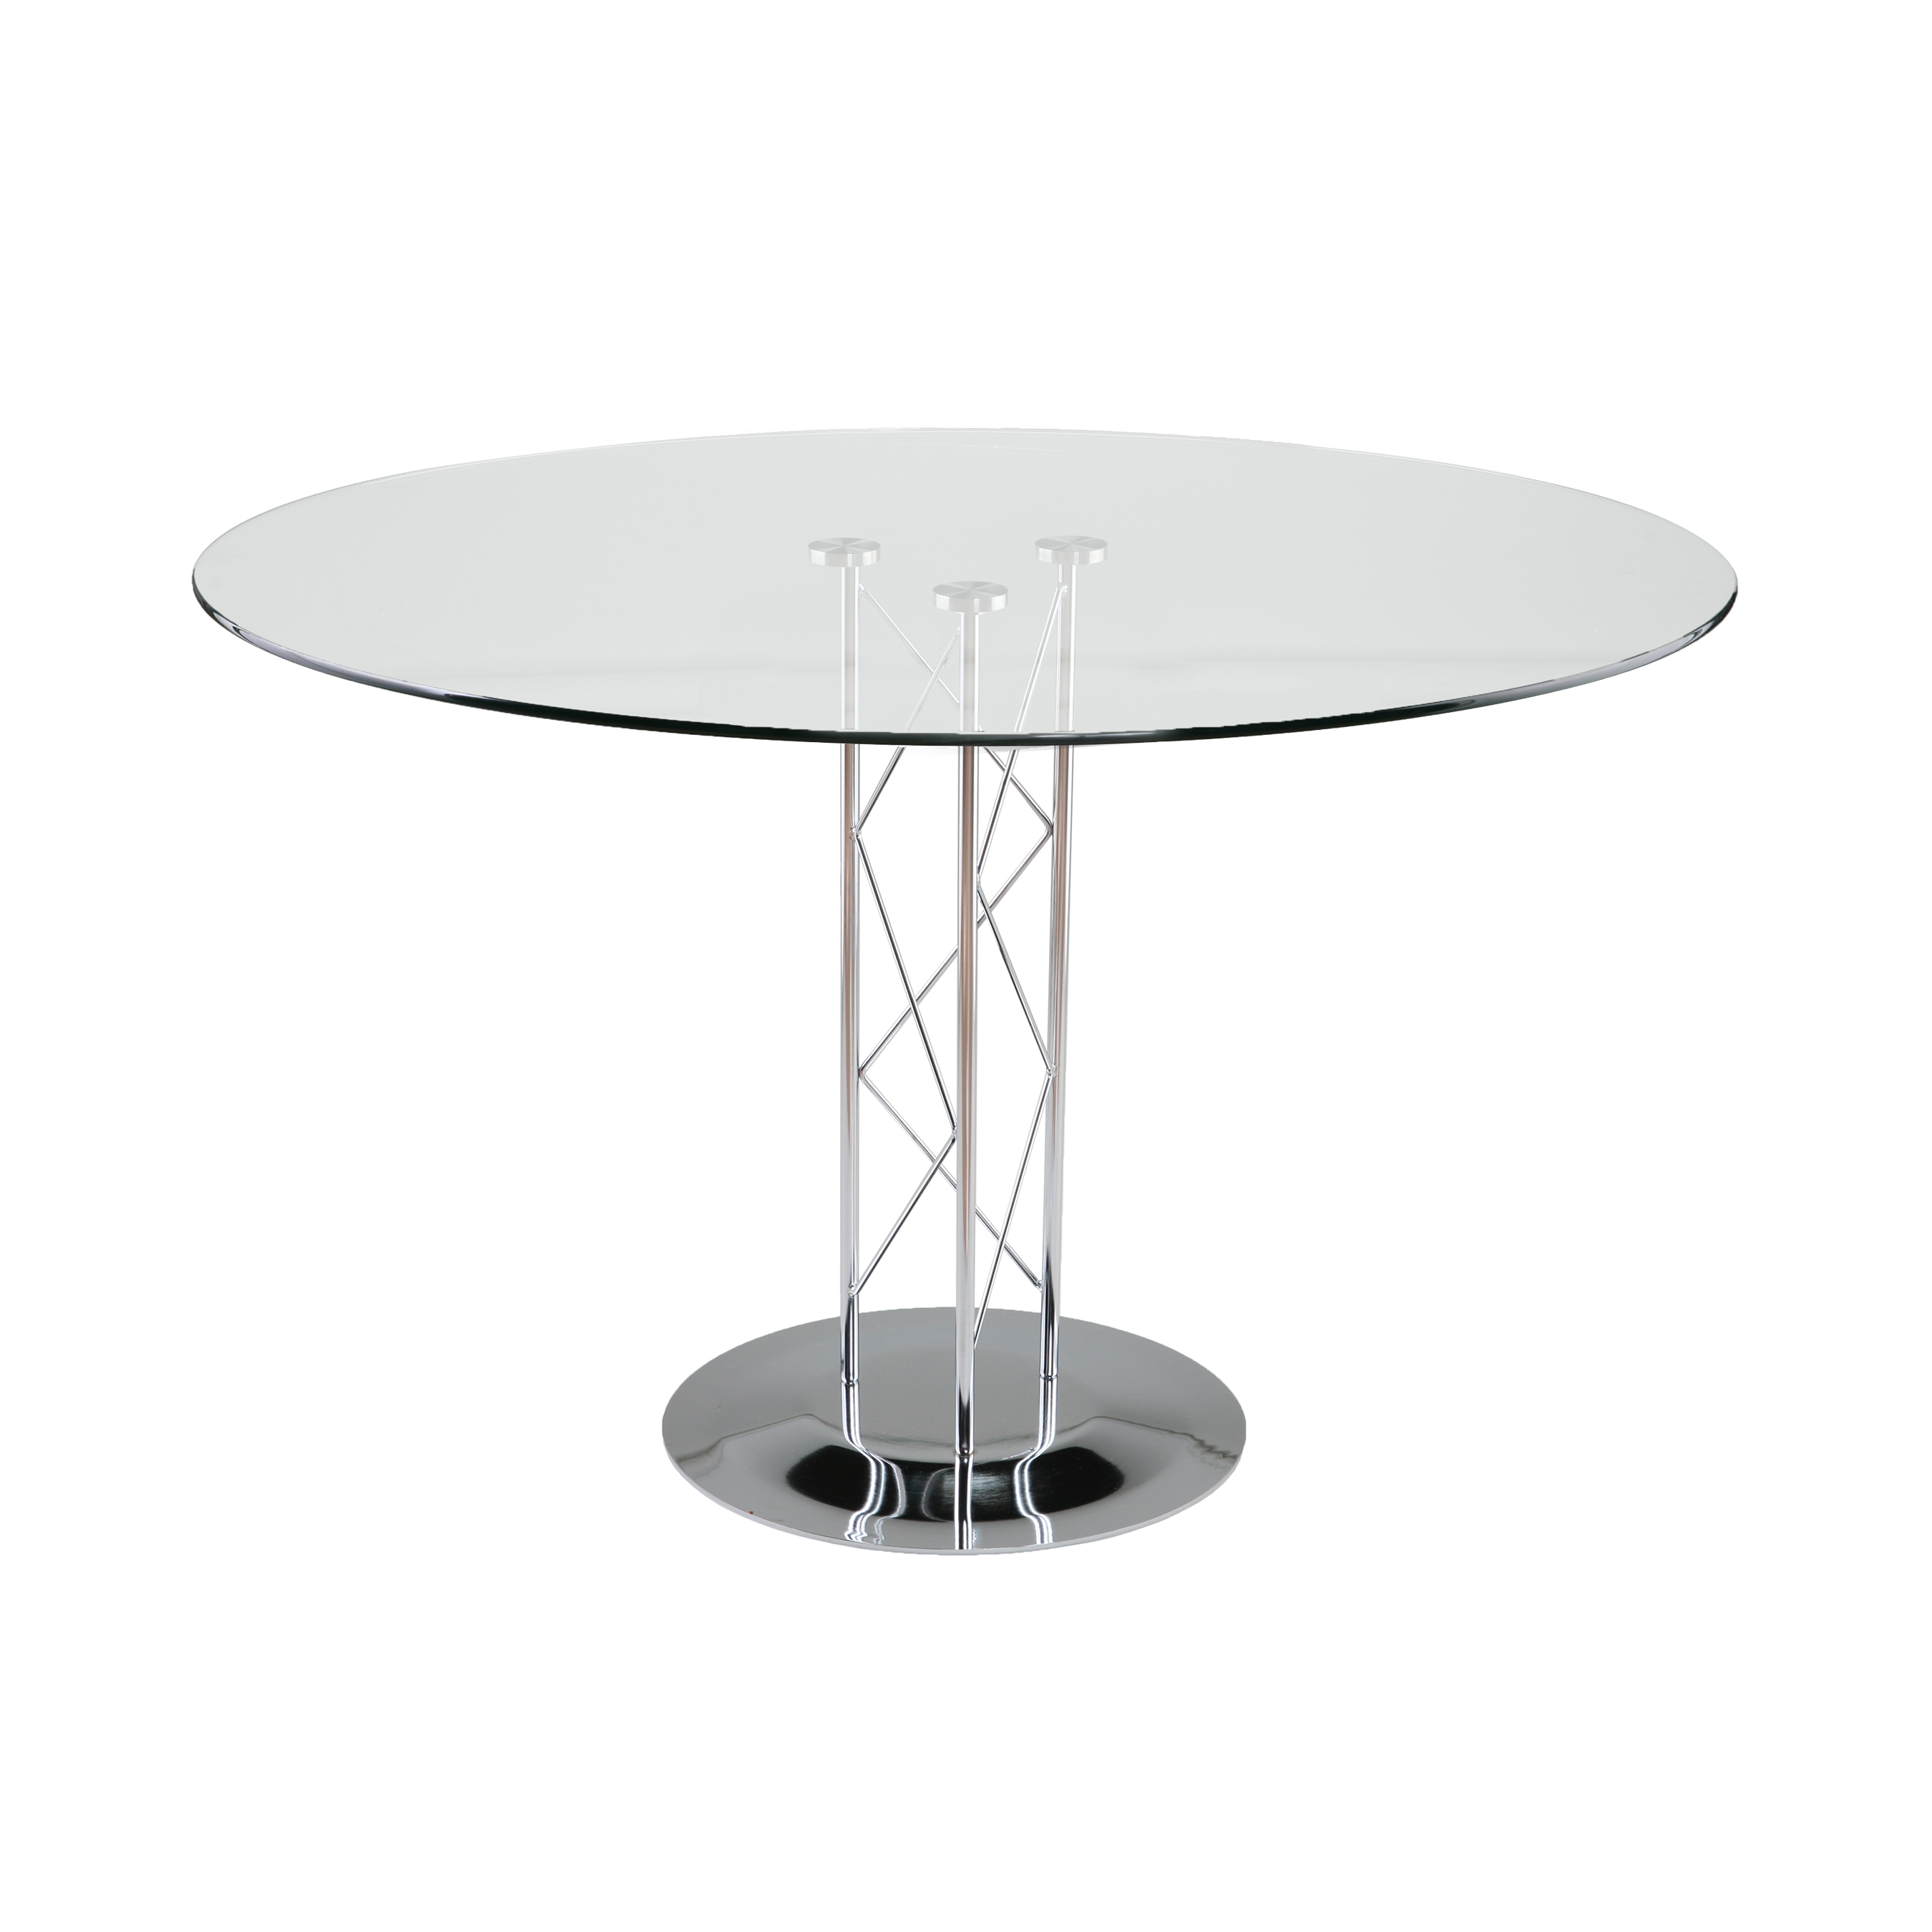 Trave clear glass conference table 1